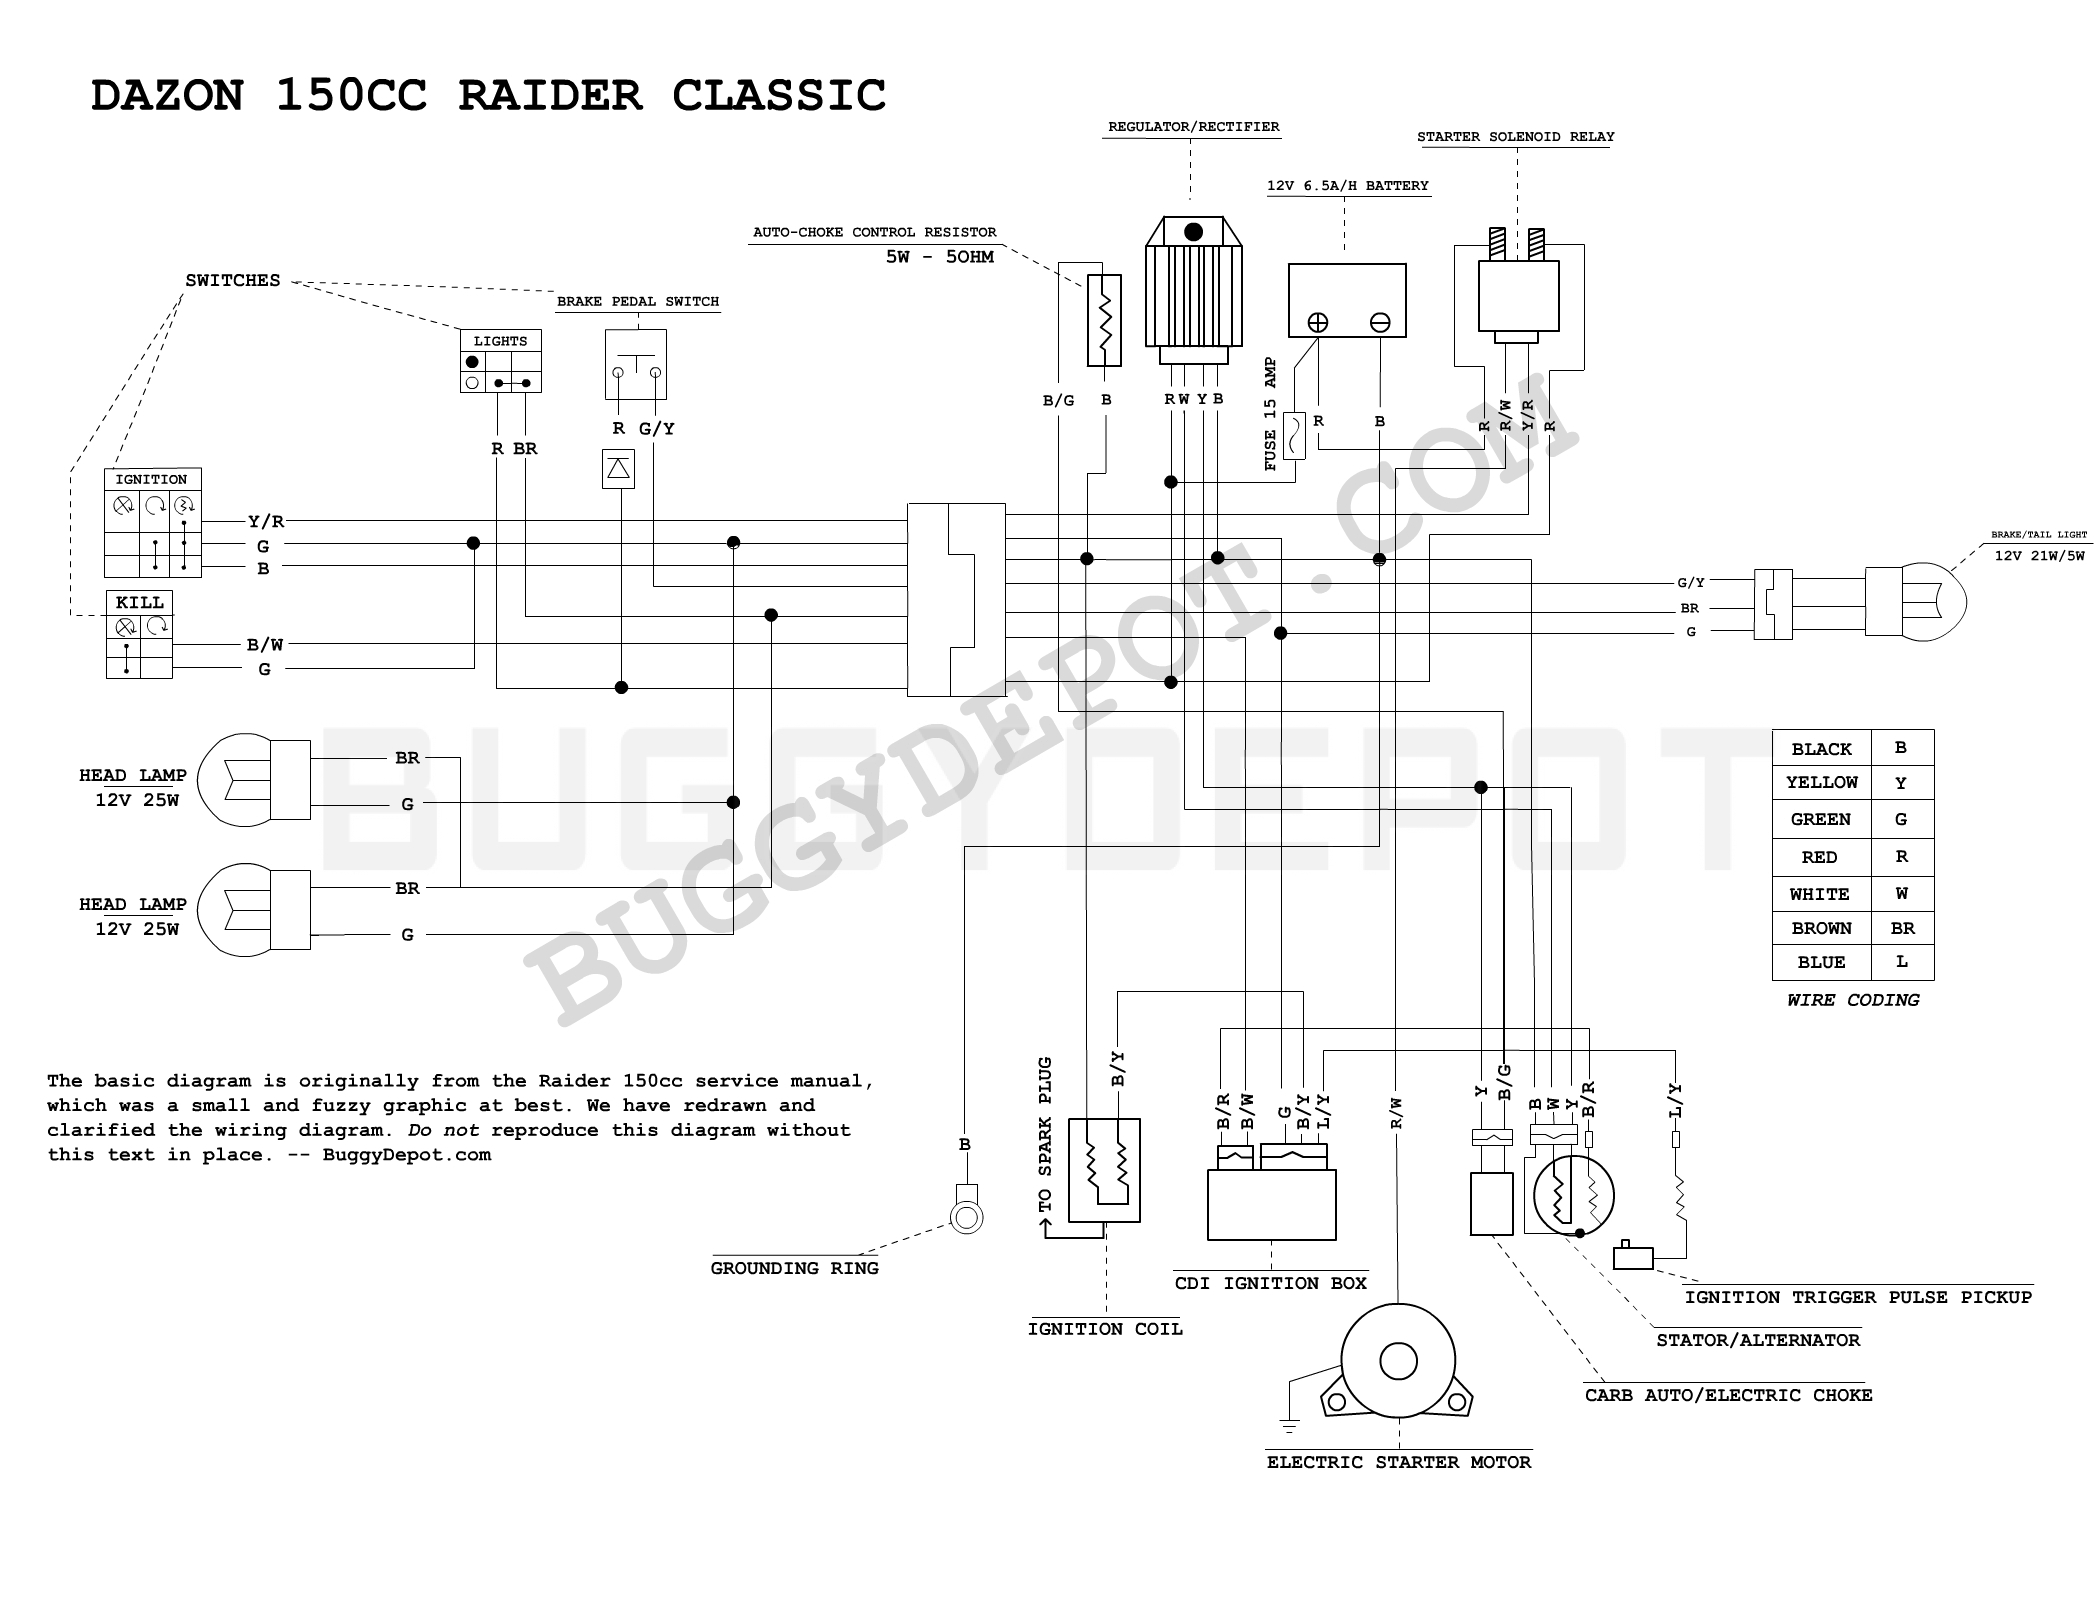 article_33_1278205207 crossfire 150r wiring diagram buggy depot technical center tomberlin crossfire 150r wiring diagram at mifinder.co